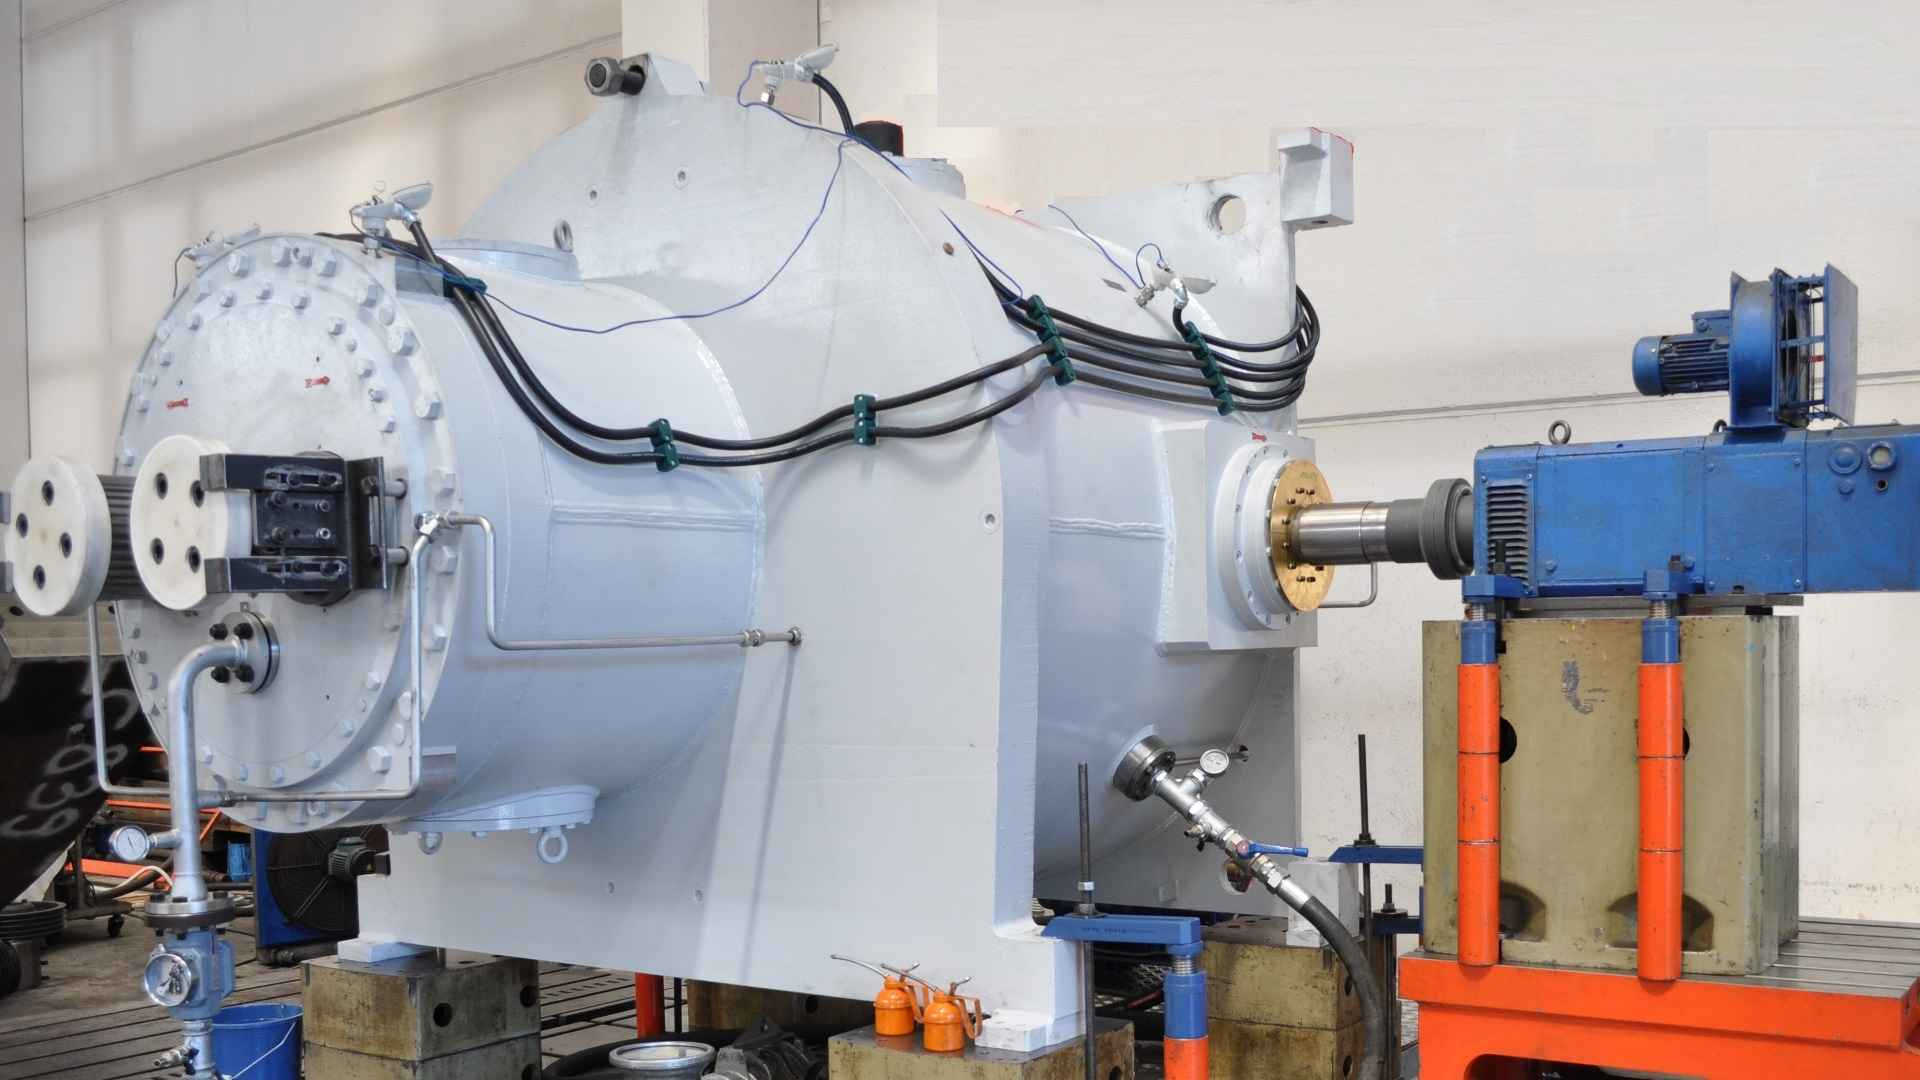 MAAG® SPU gear unit installed in our test facility.